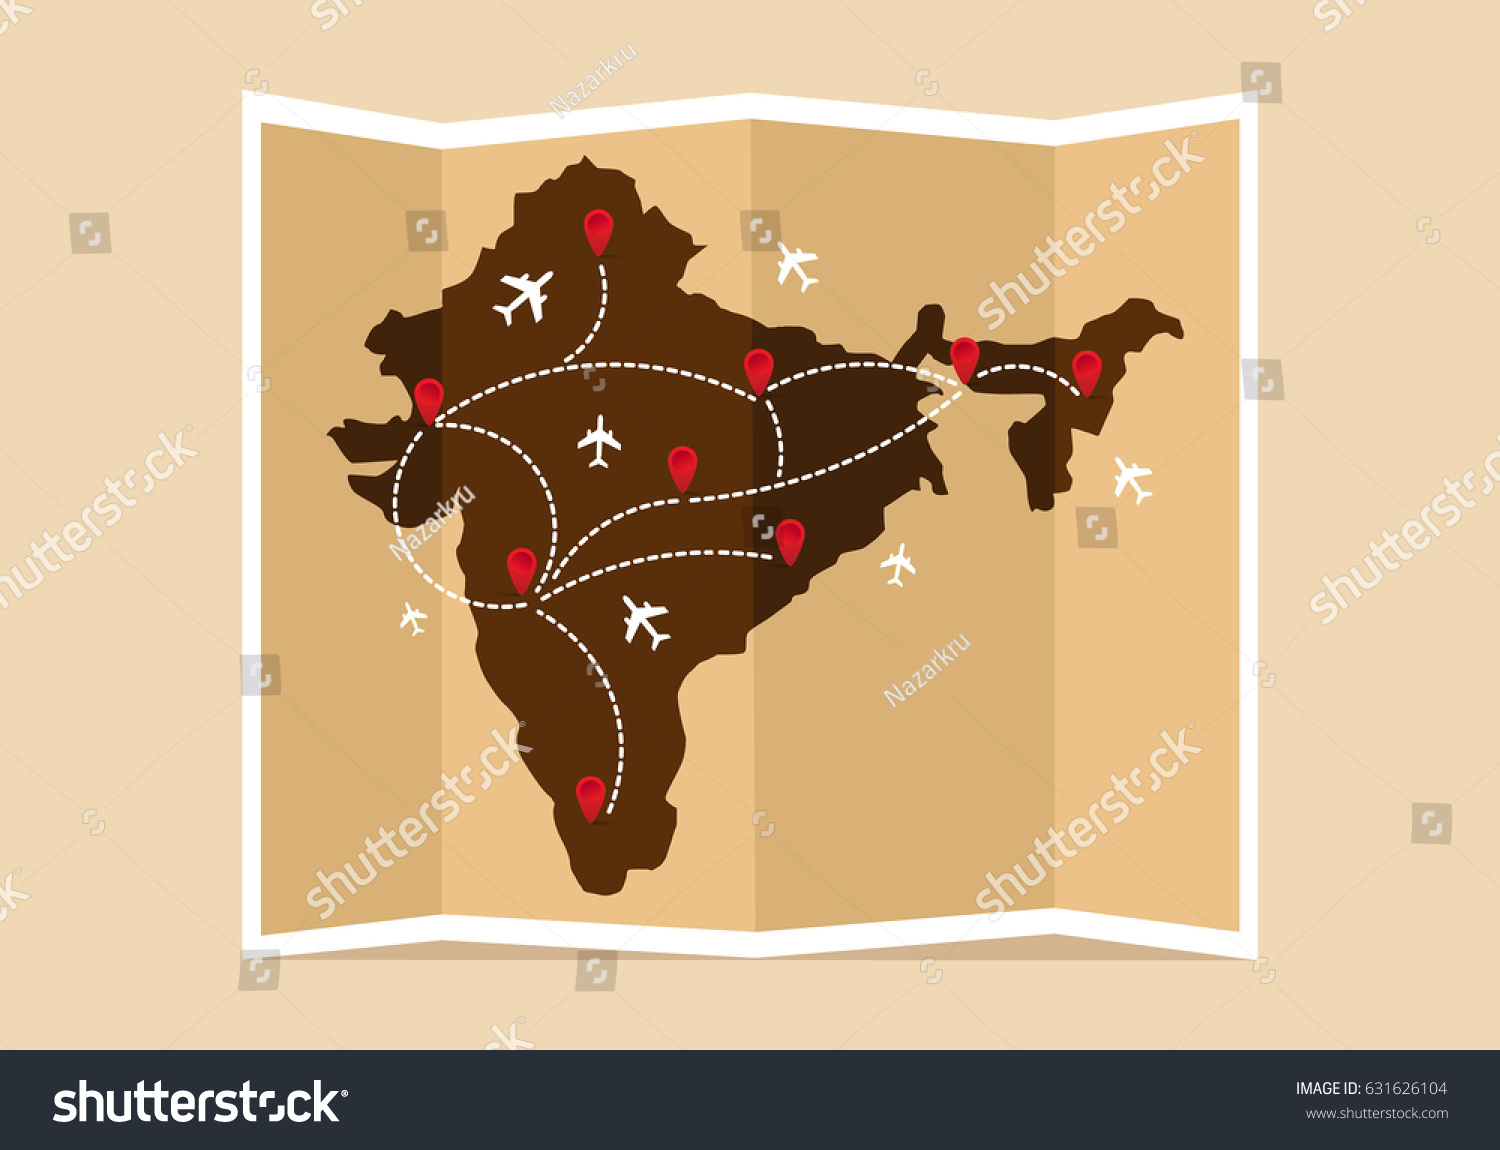 Travel tourism map indian vintage world stock vector 631626104 travel and tourism map indian vintage world map vector illustration flat design gumiabroncs Choice Image